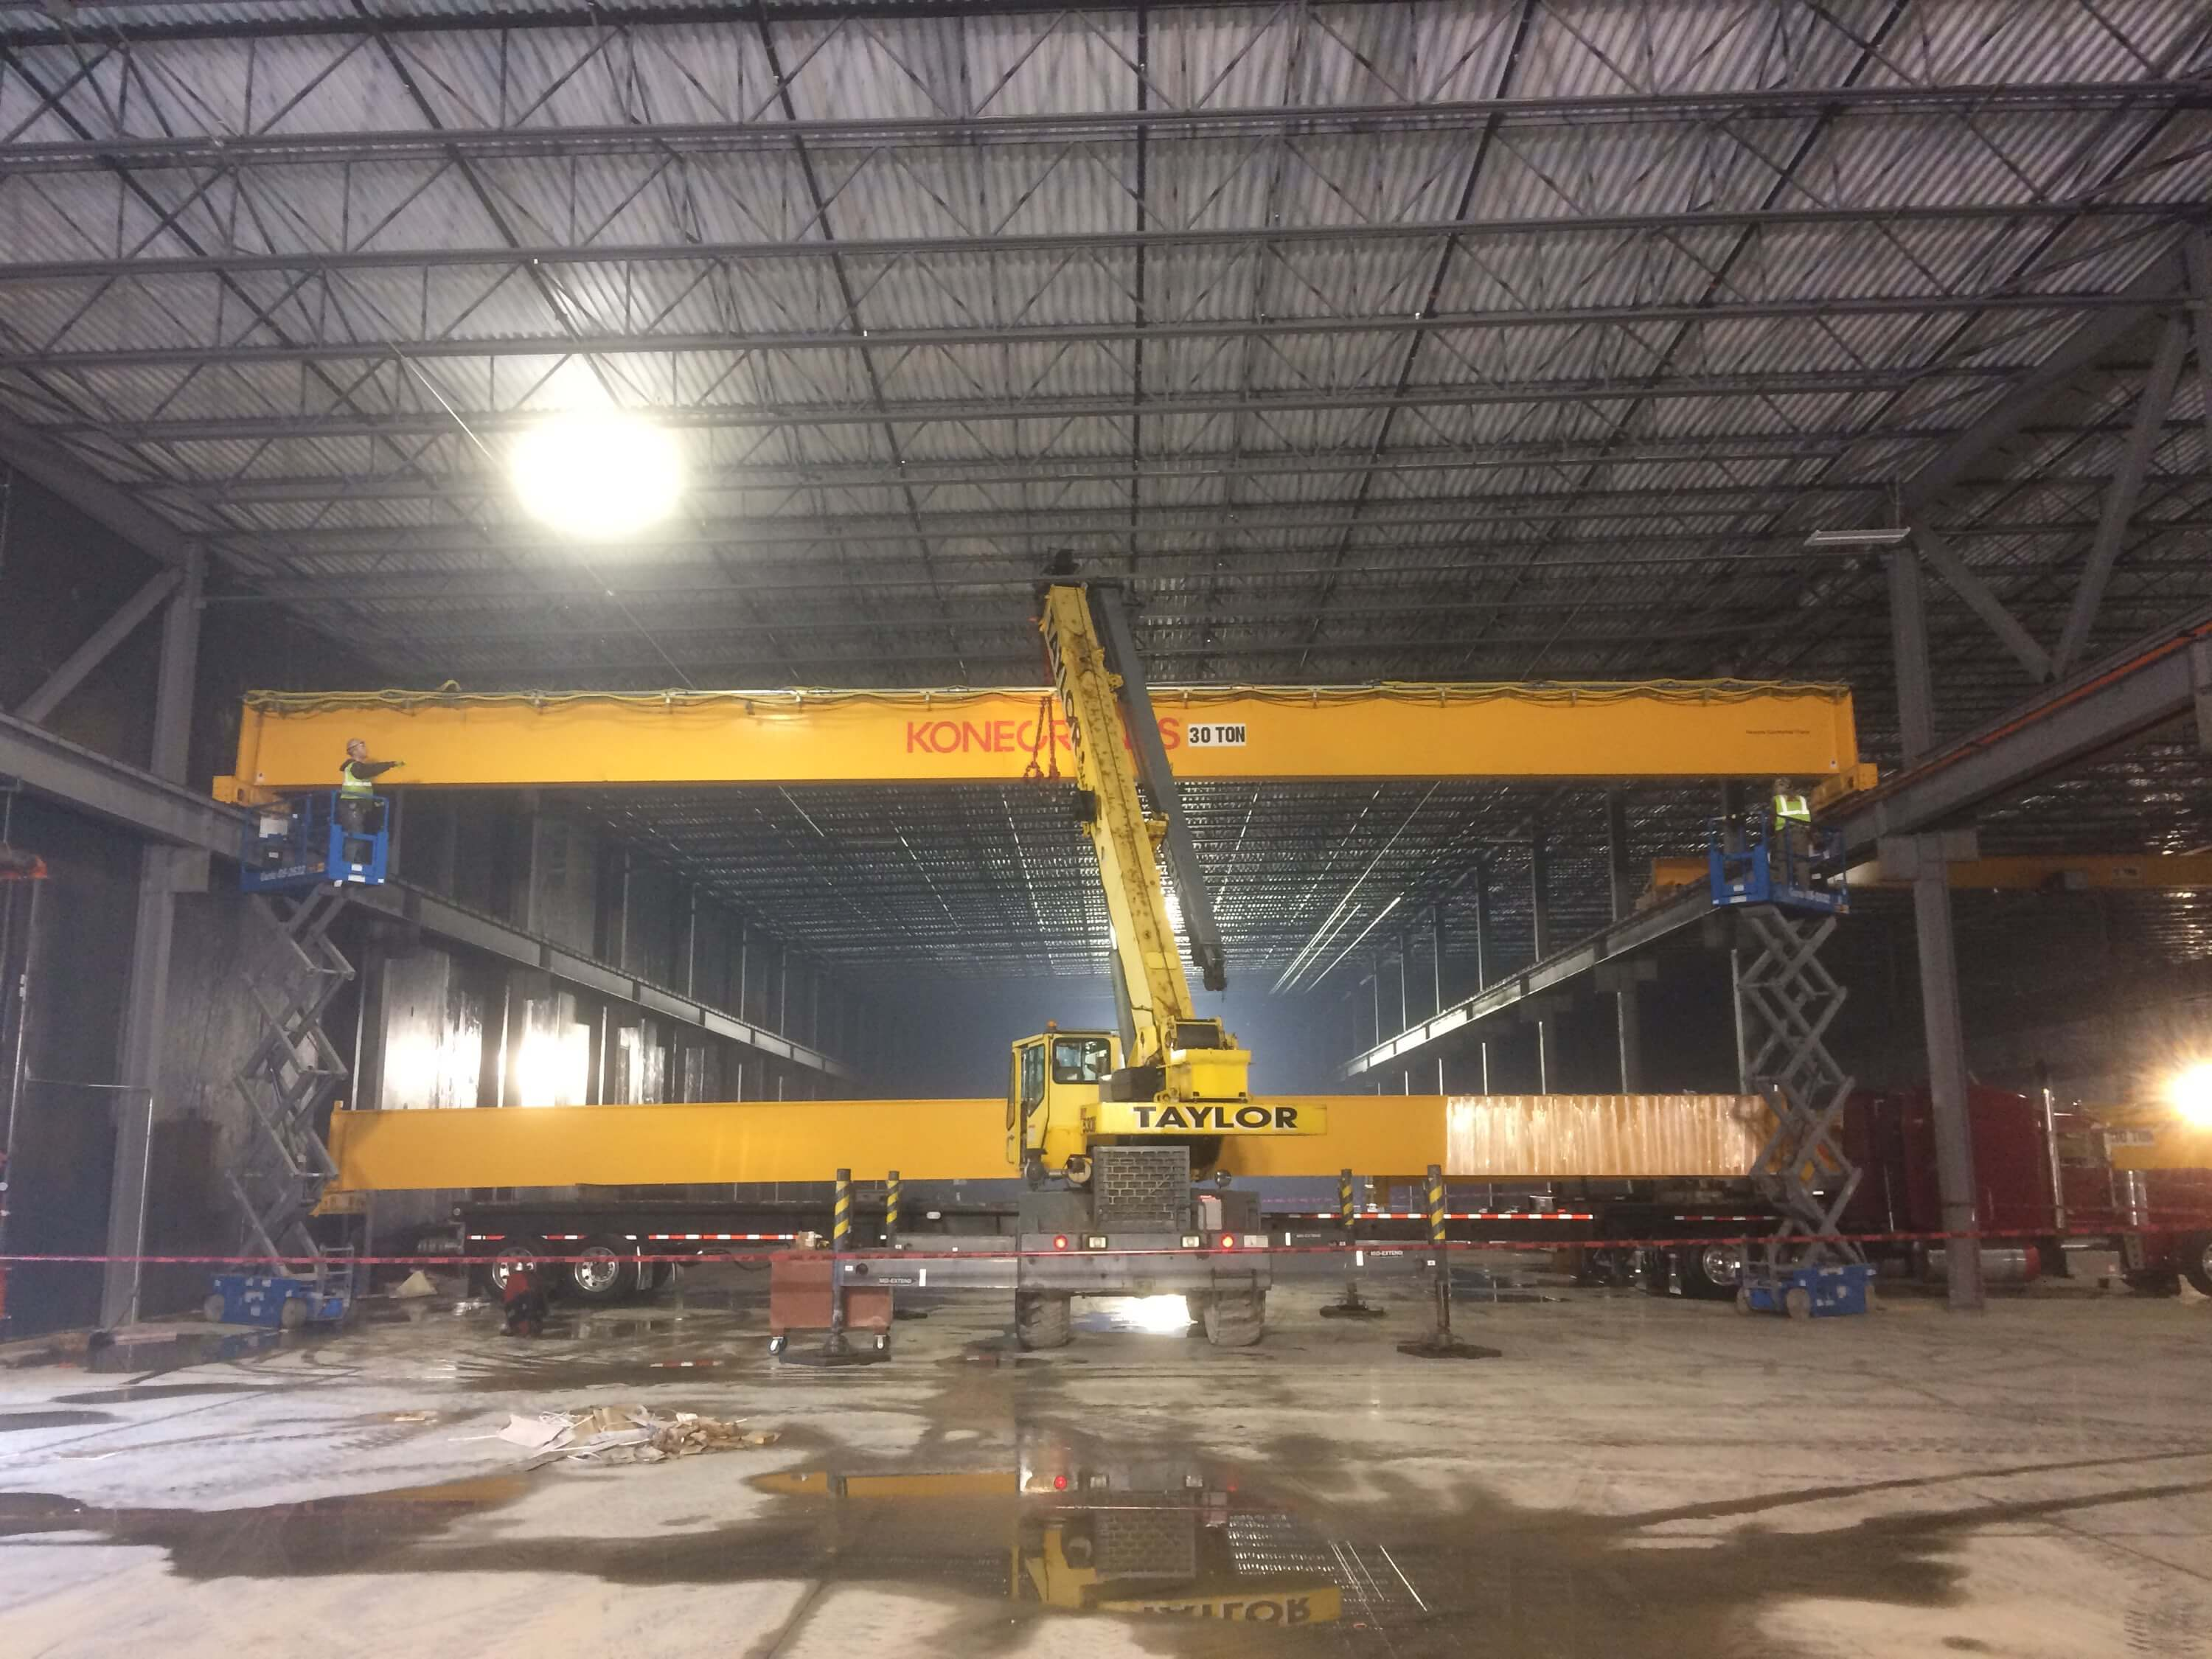 Konecranes and Extended Taylor